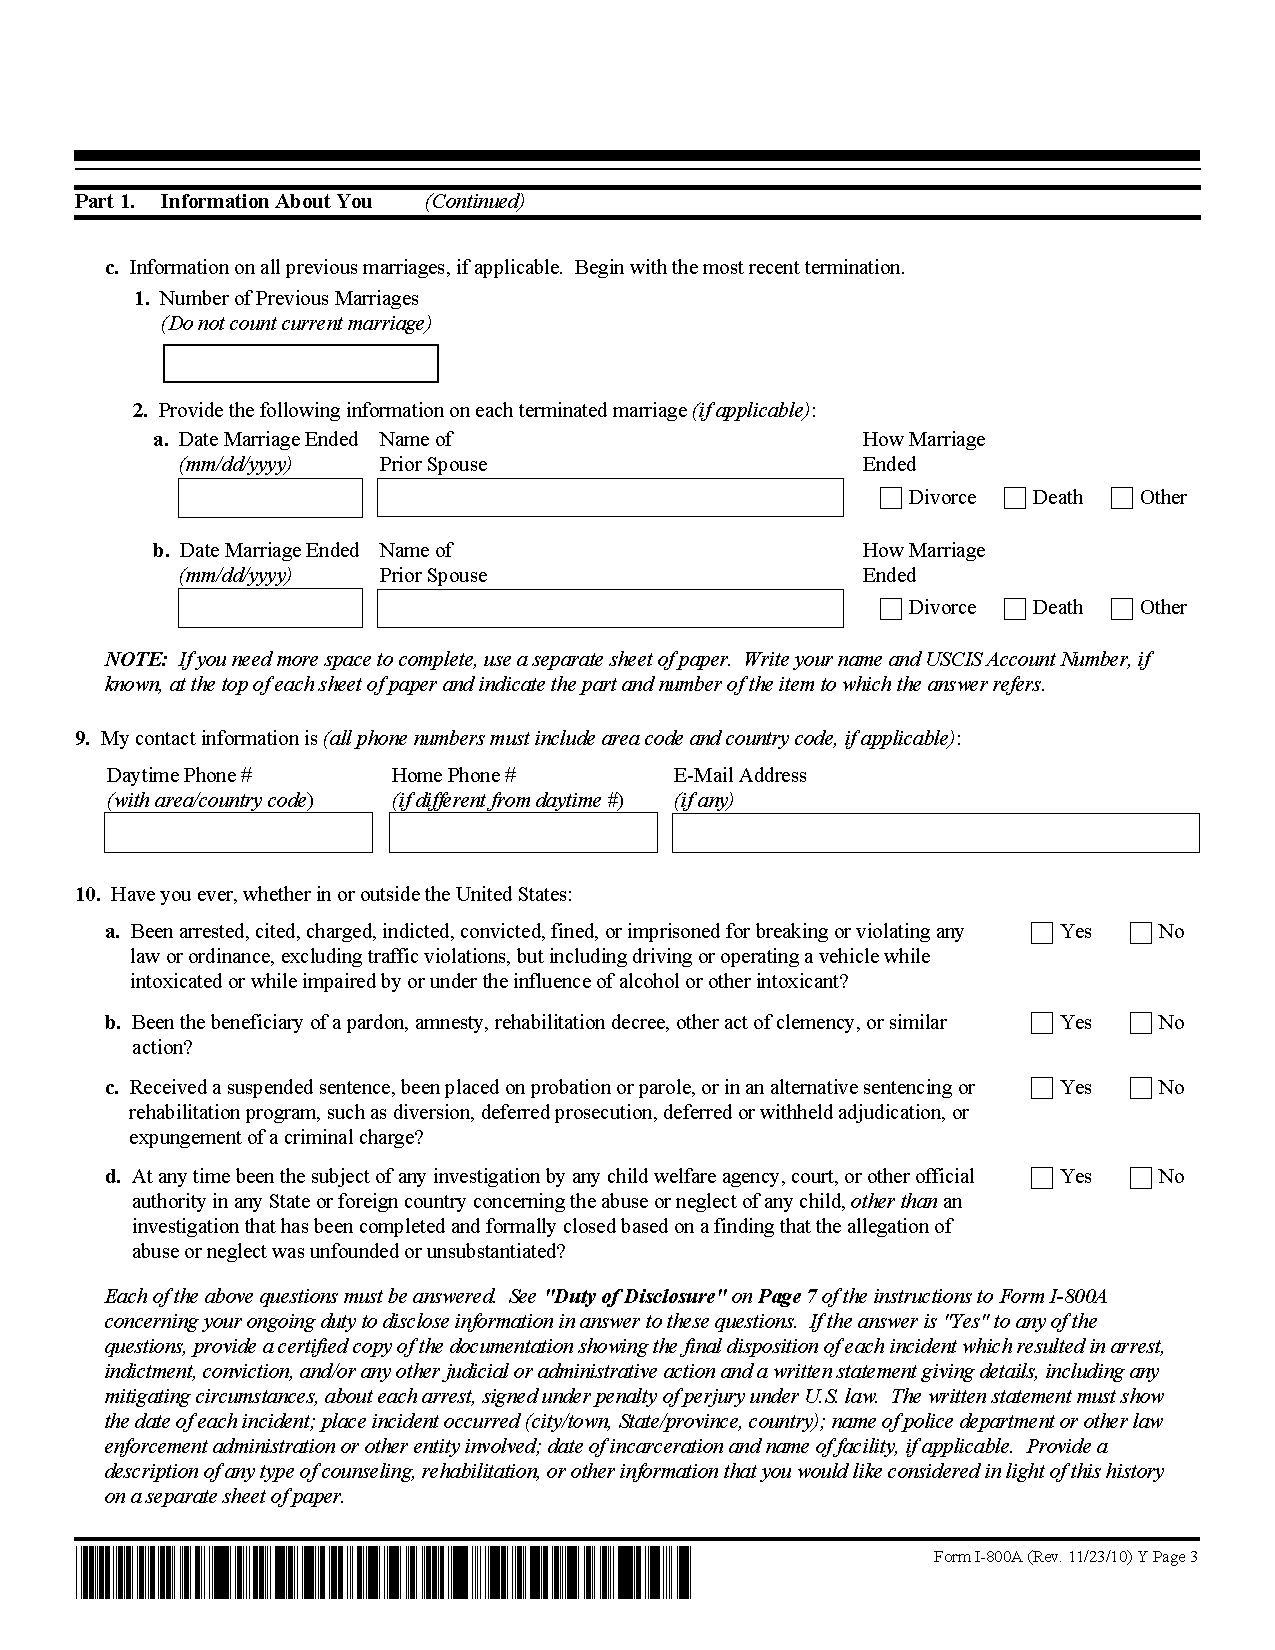 Form I-800A Application for Determination of Suitability to Adopt ...